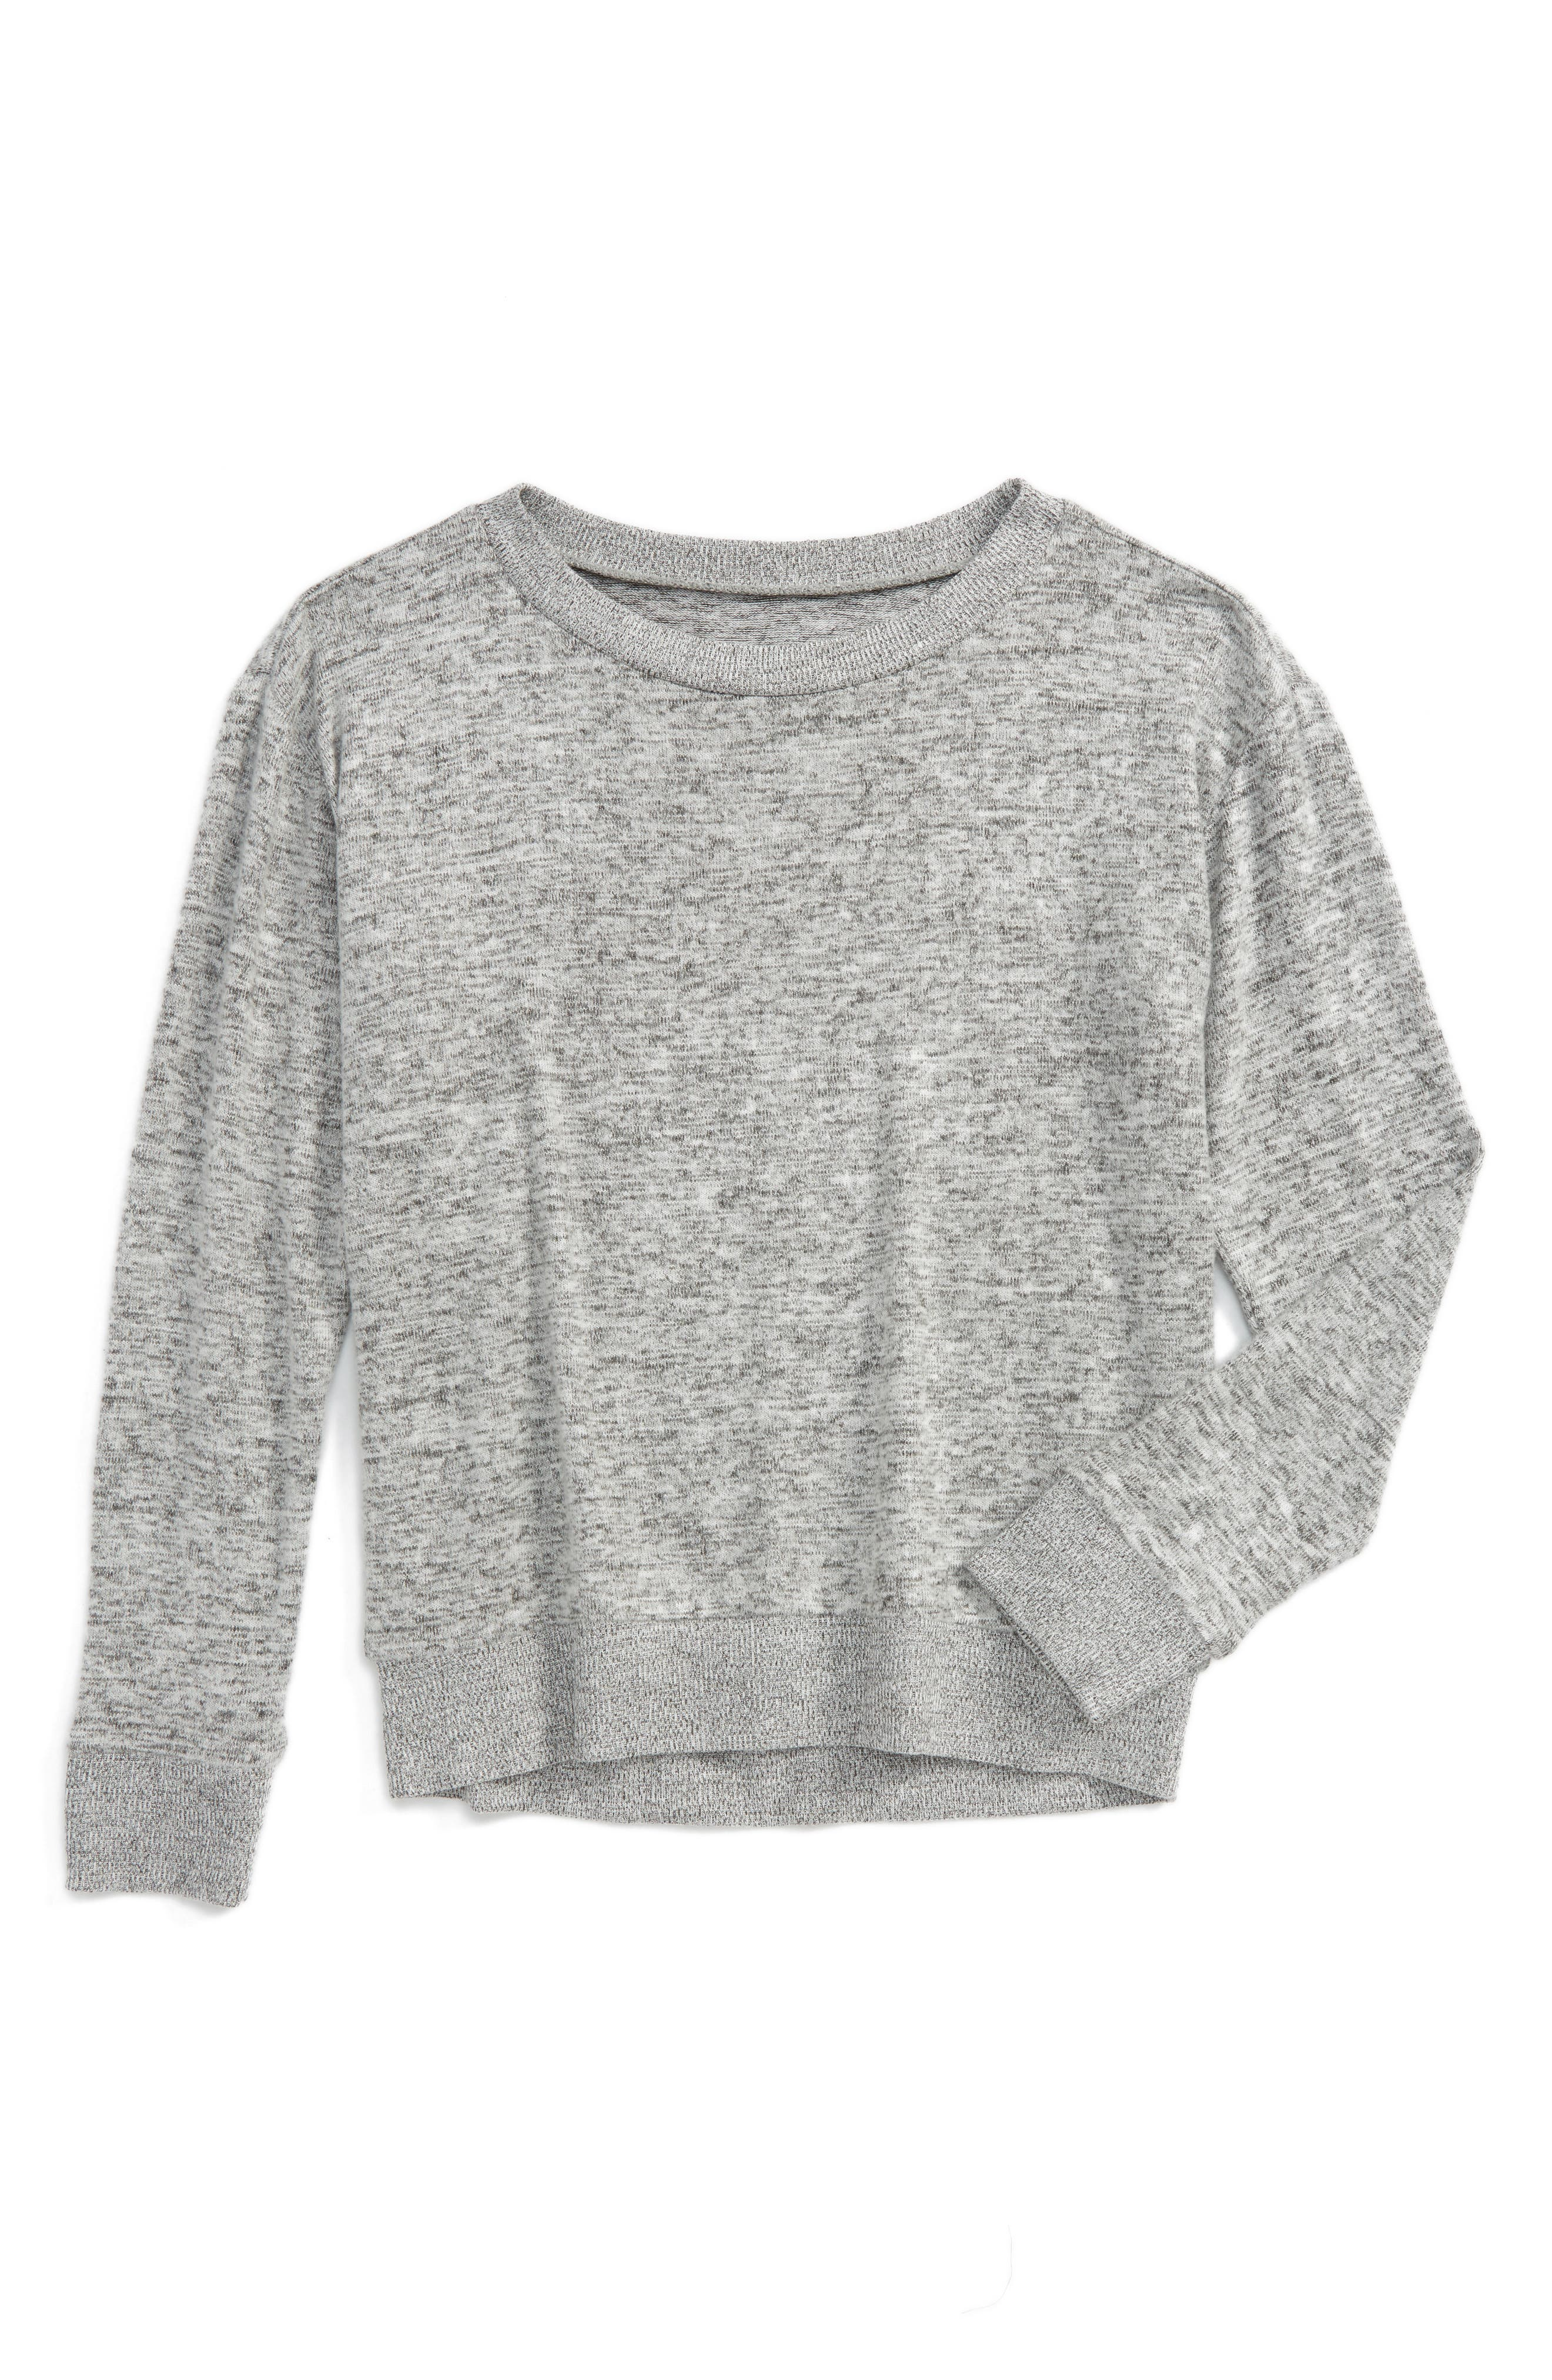 Supersoft Sweater,                         Main,                         color, Grey Ash Heather